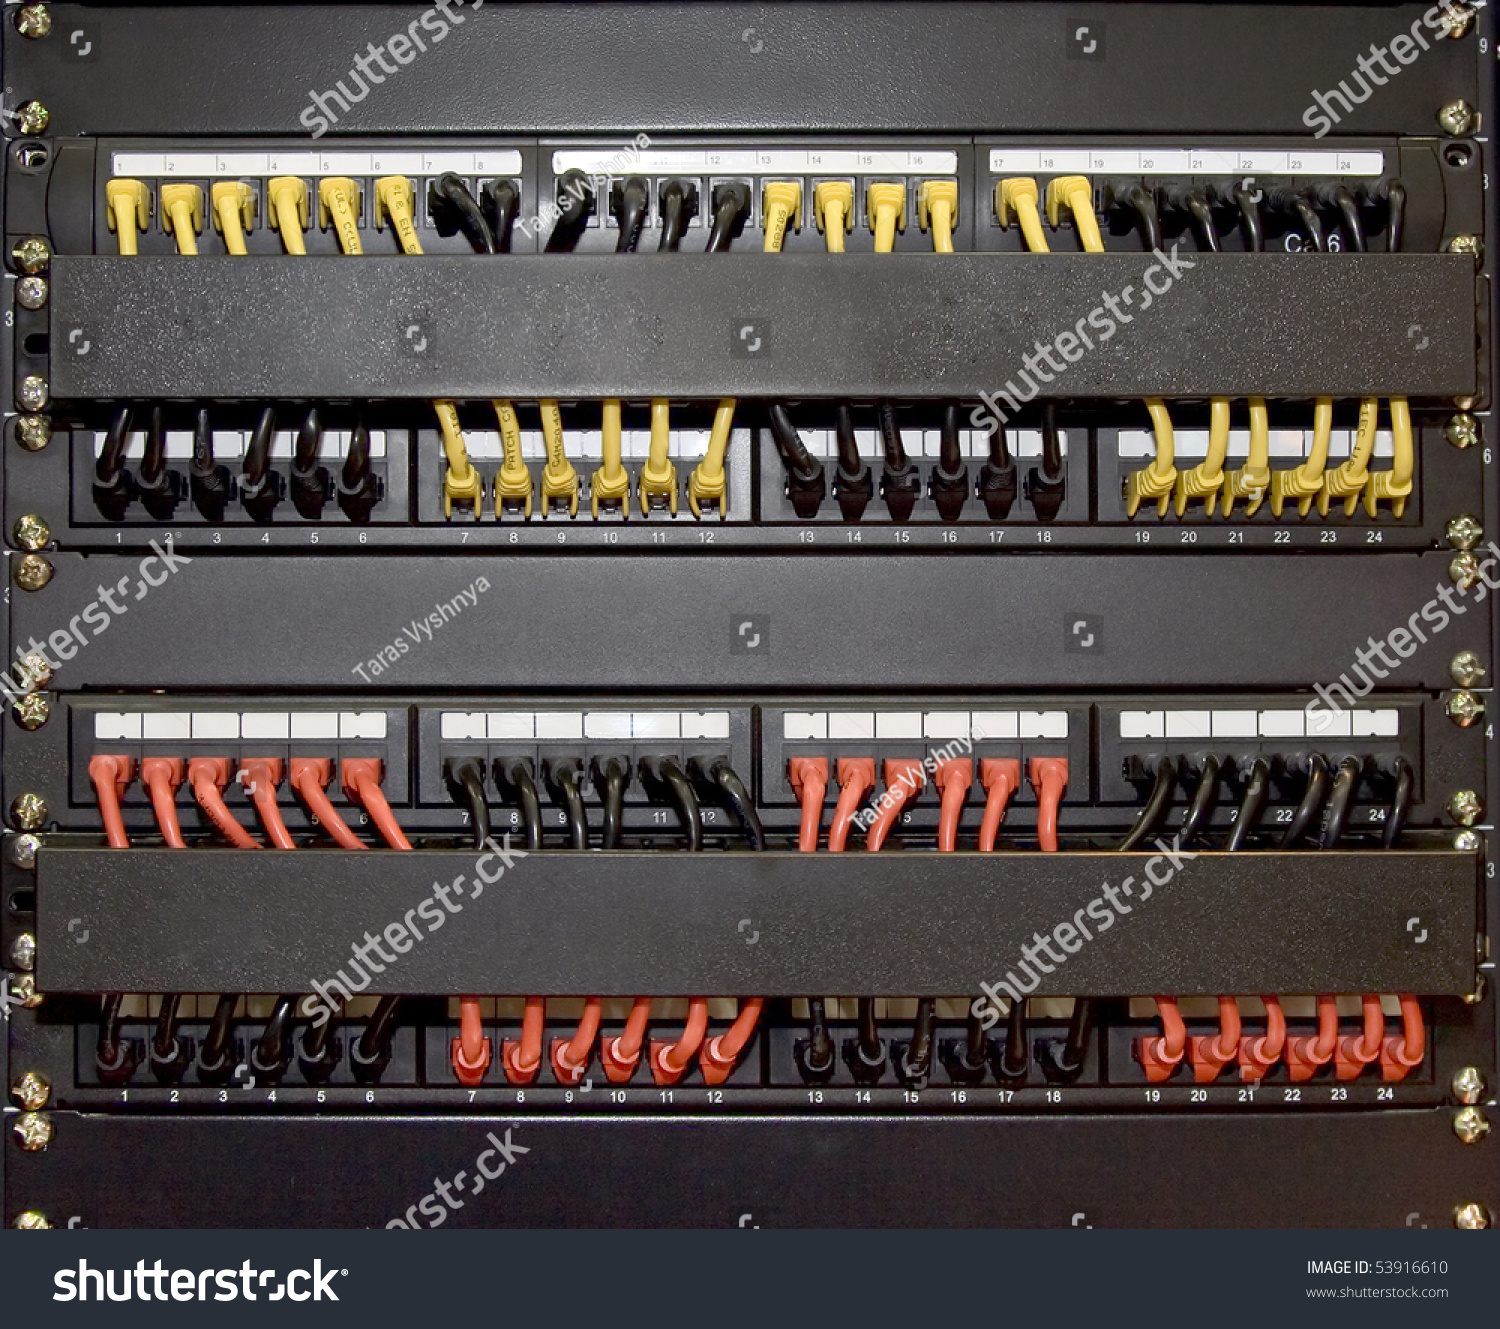 Computer Patch Cords Panel Cabling Rack Stock Photo